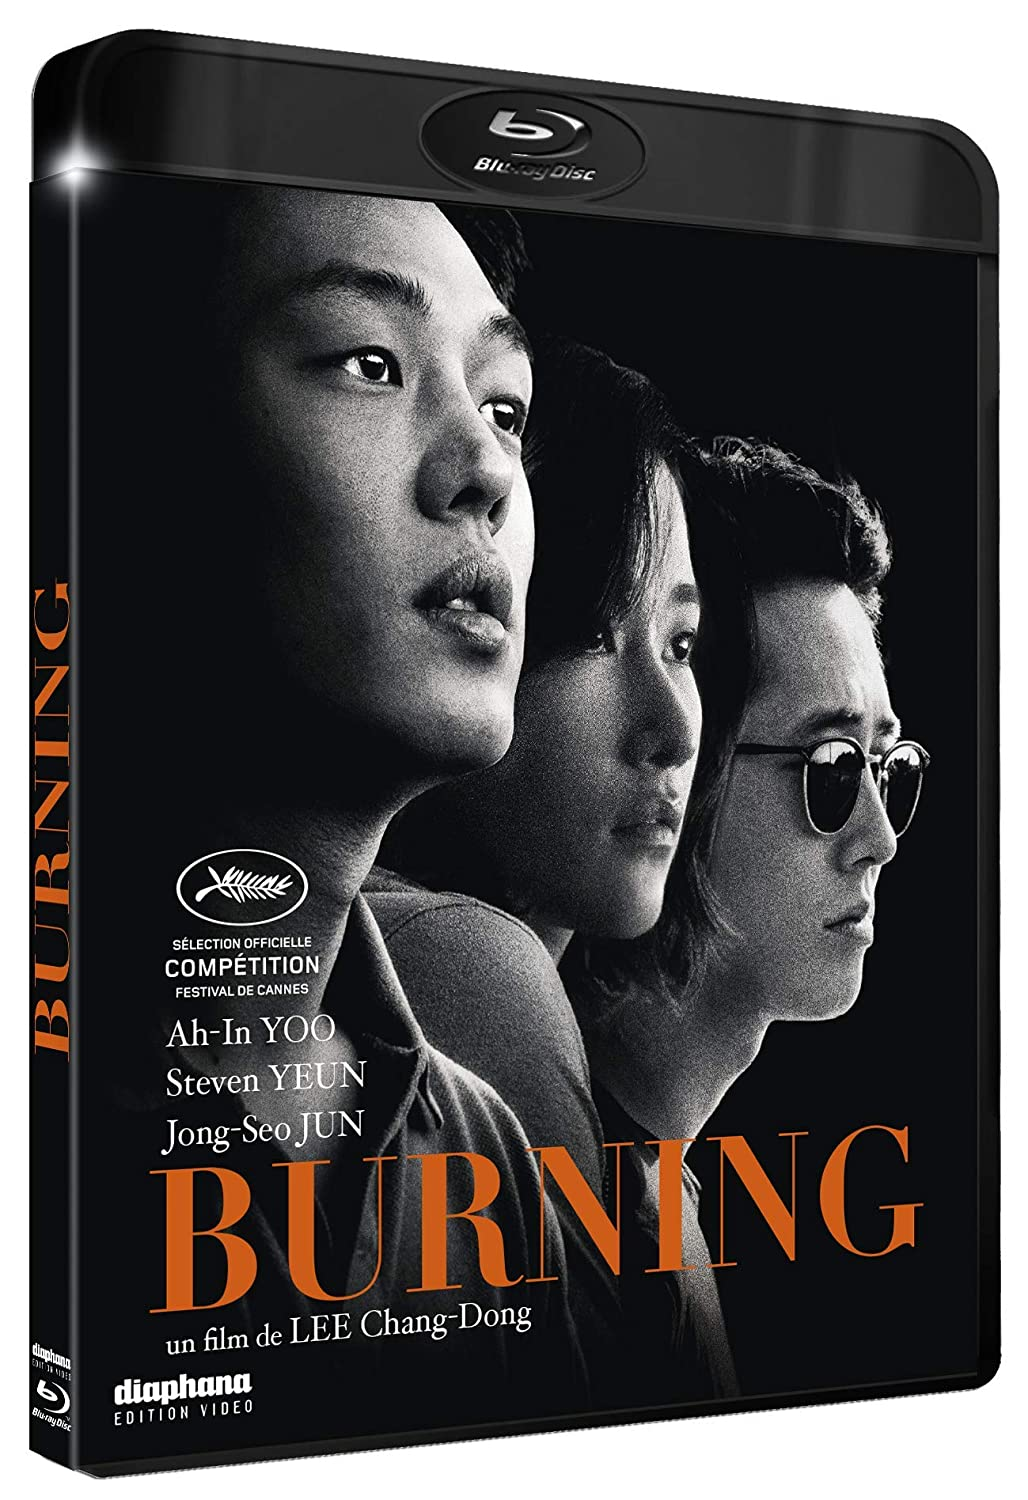 blu-ray du film Burning